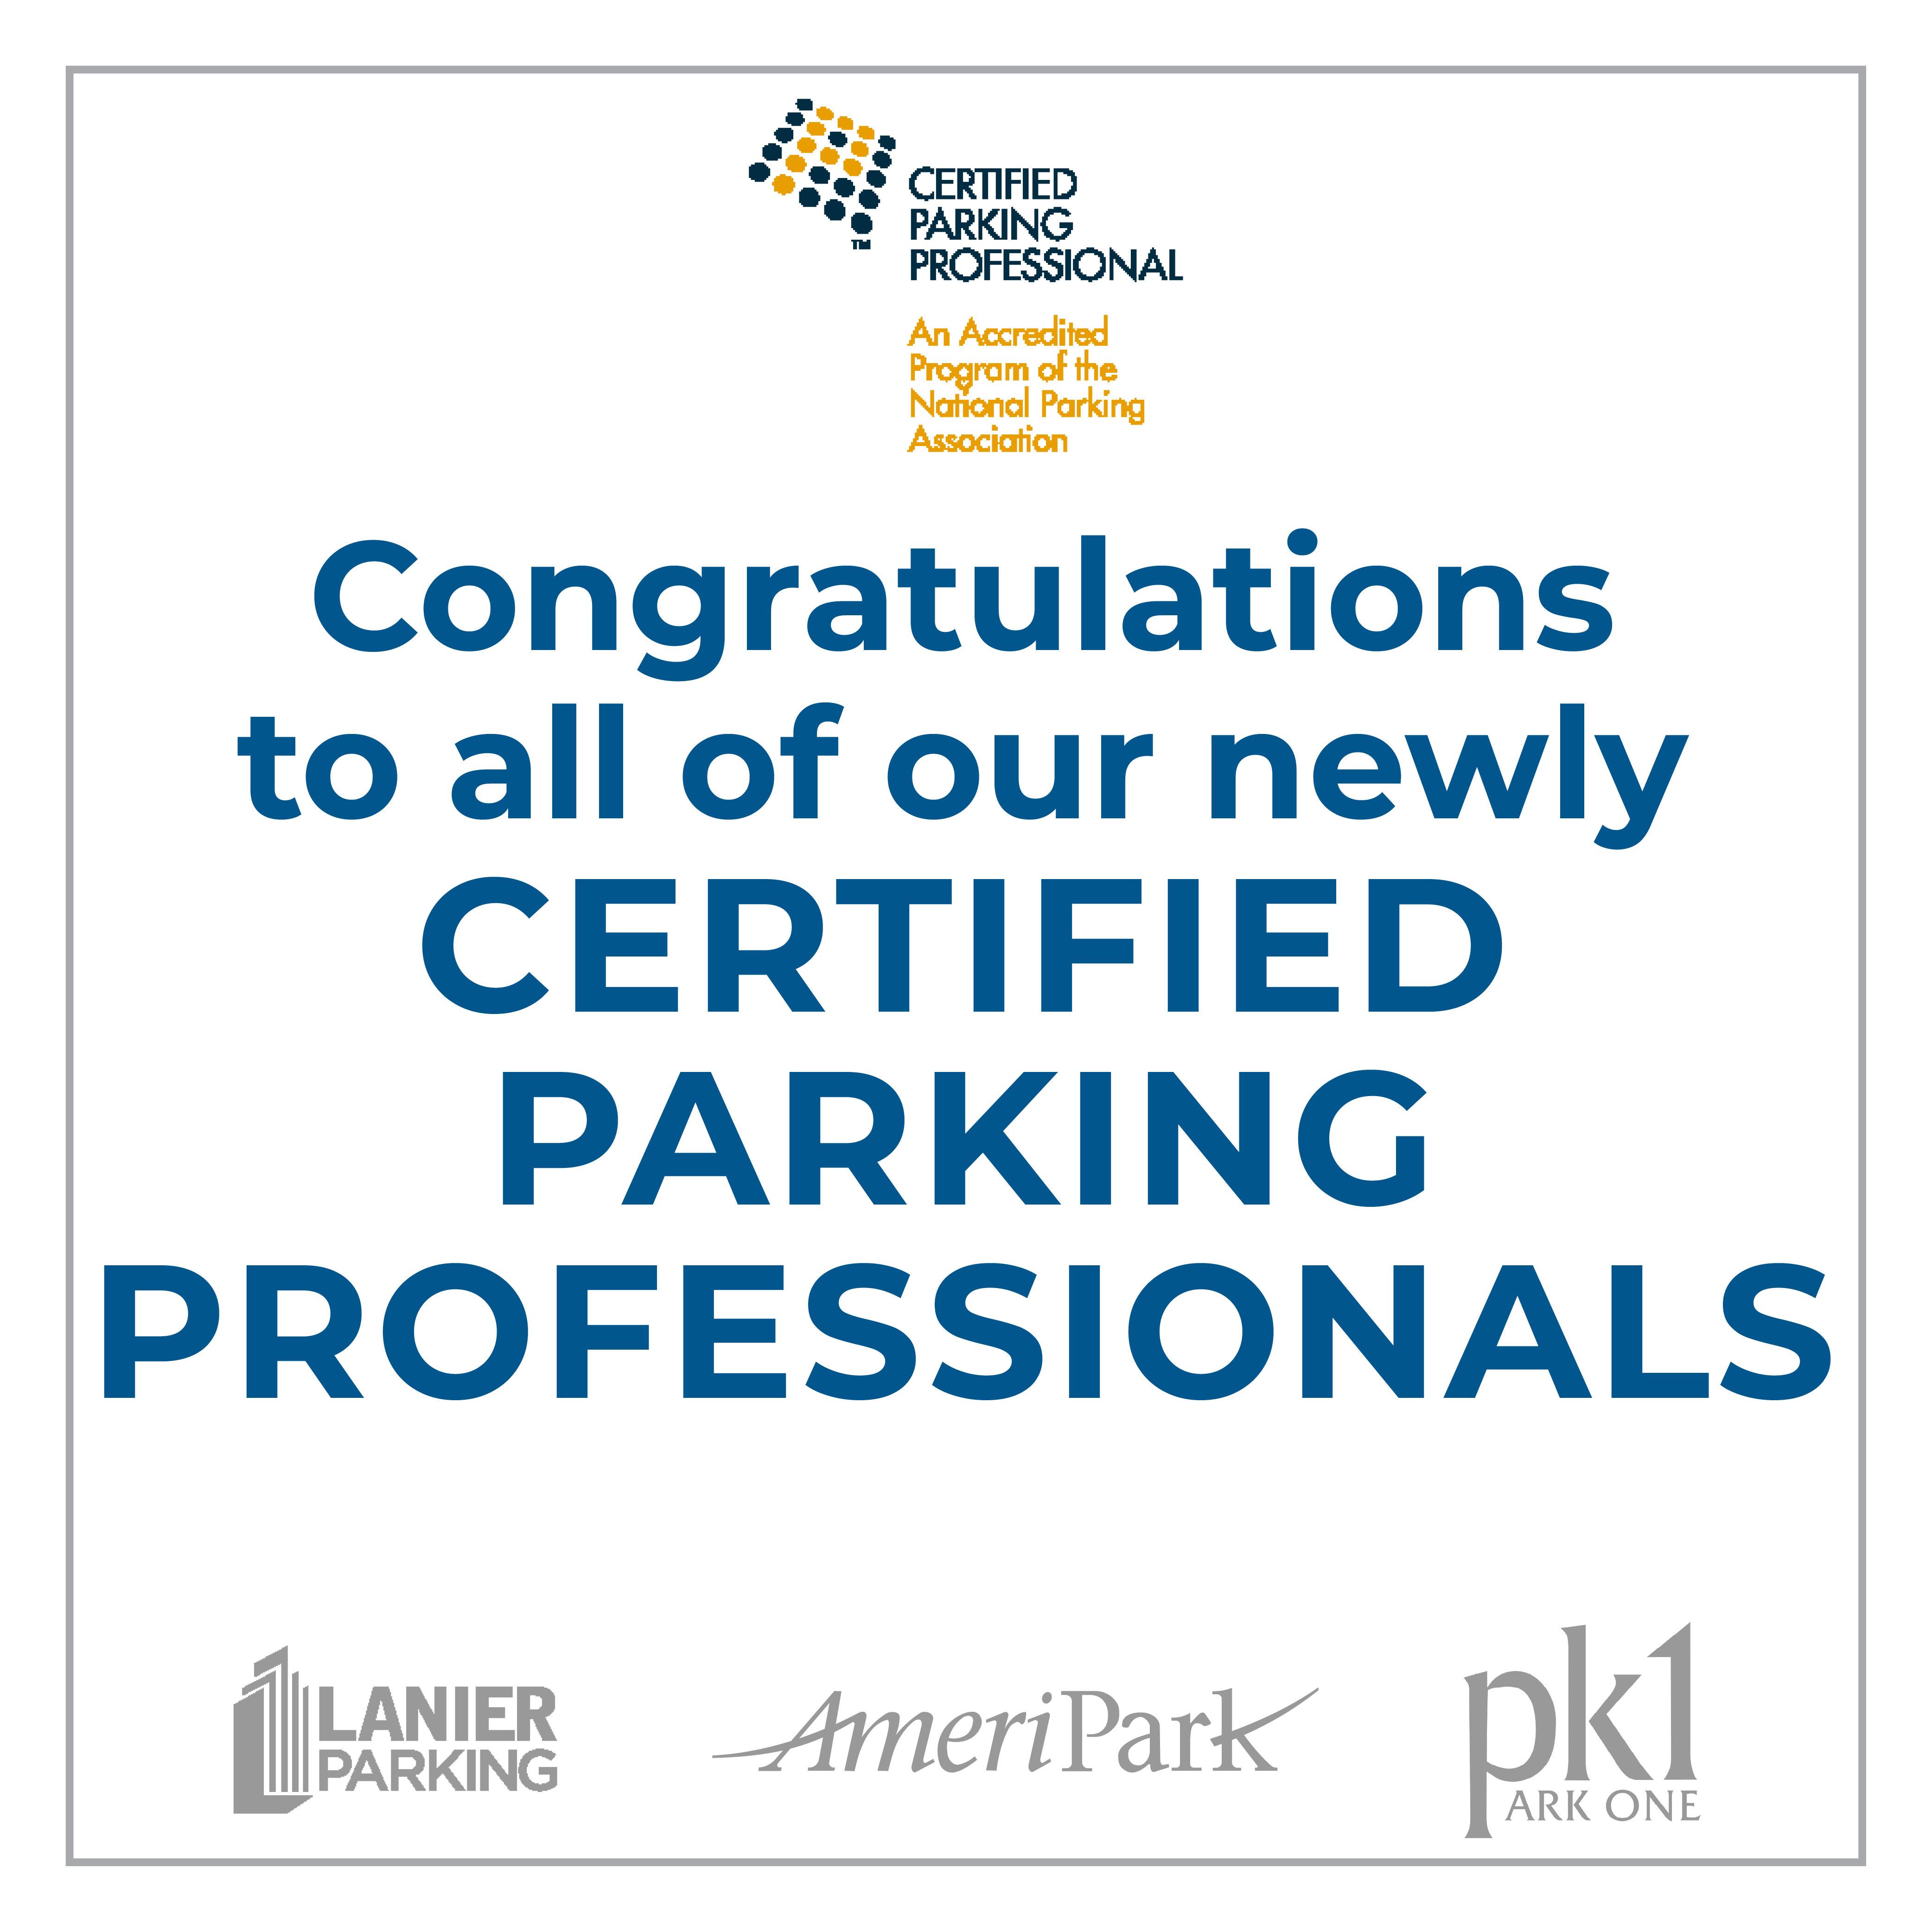 Citizens Parking Invests in the Professional Development of its Management Personnel